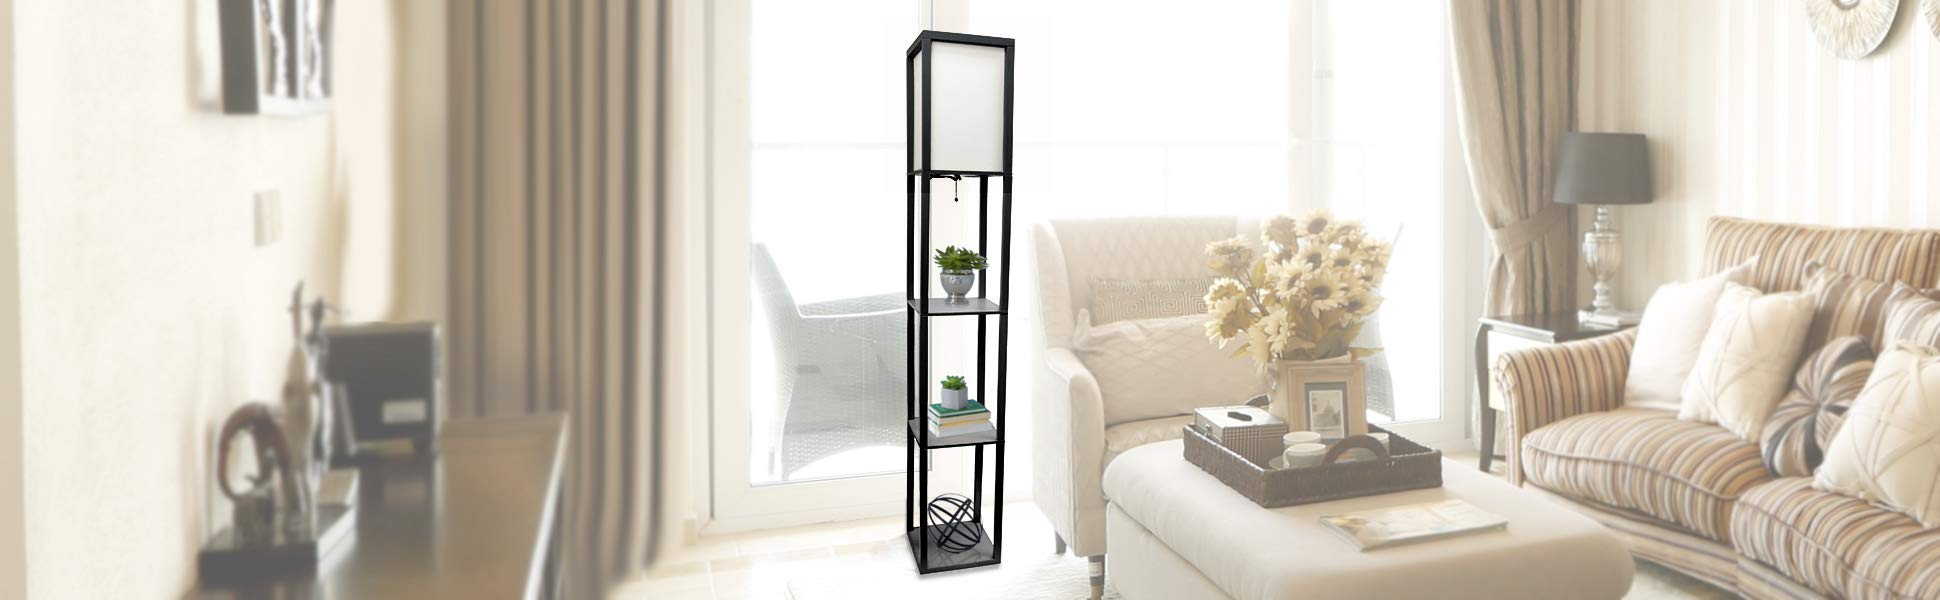 Simple Designs Home LF1014-BLK Etagere Organizer Storage Shelf Linen Shade Floor Lamp, Black by Simple Designs Home (Image #5)